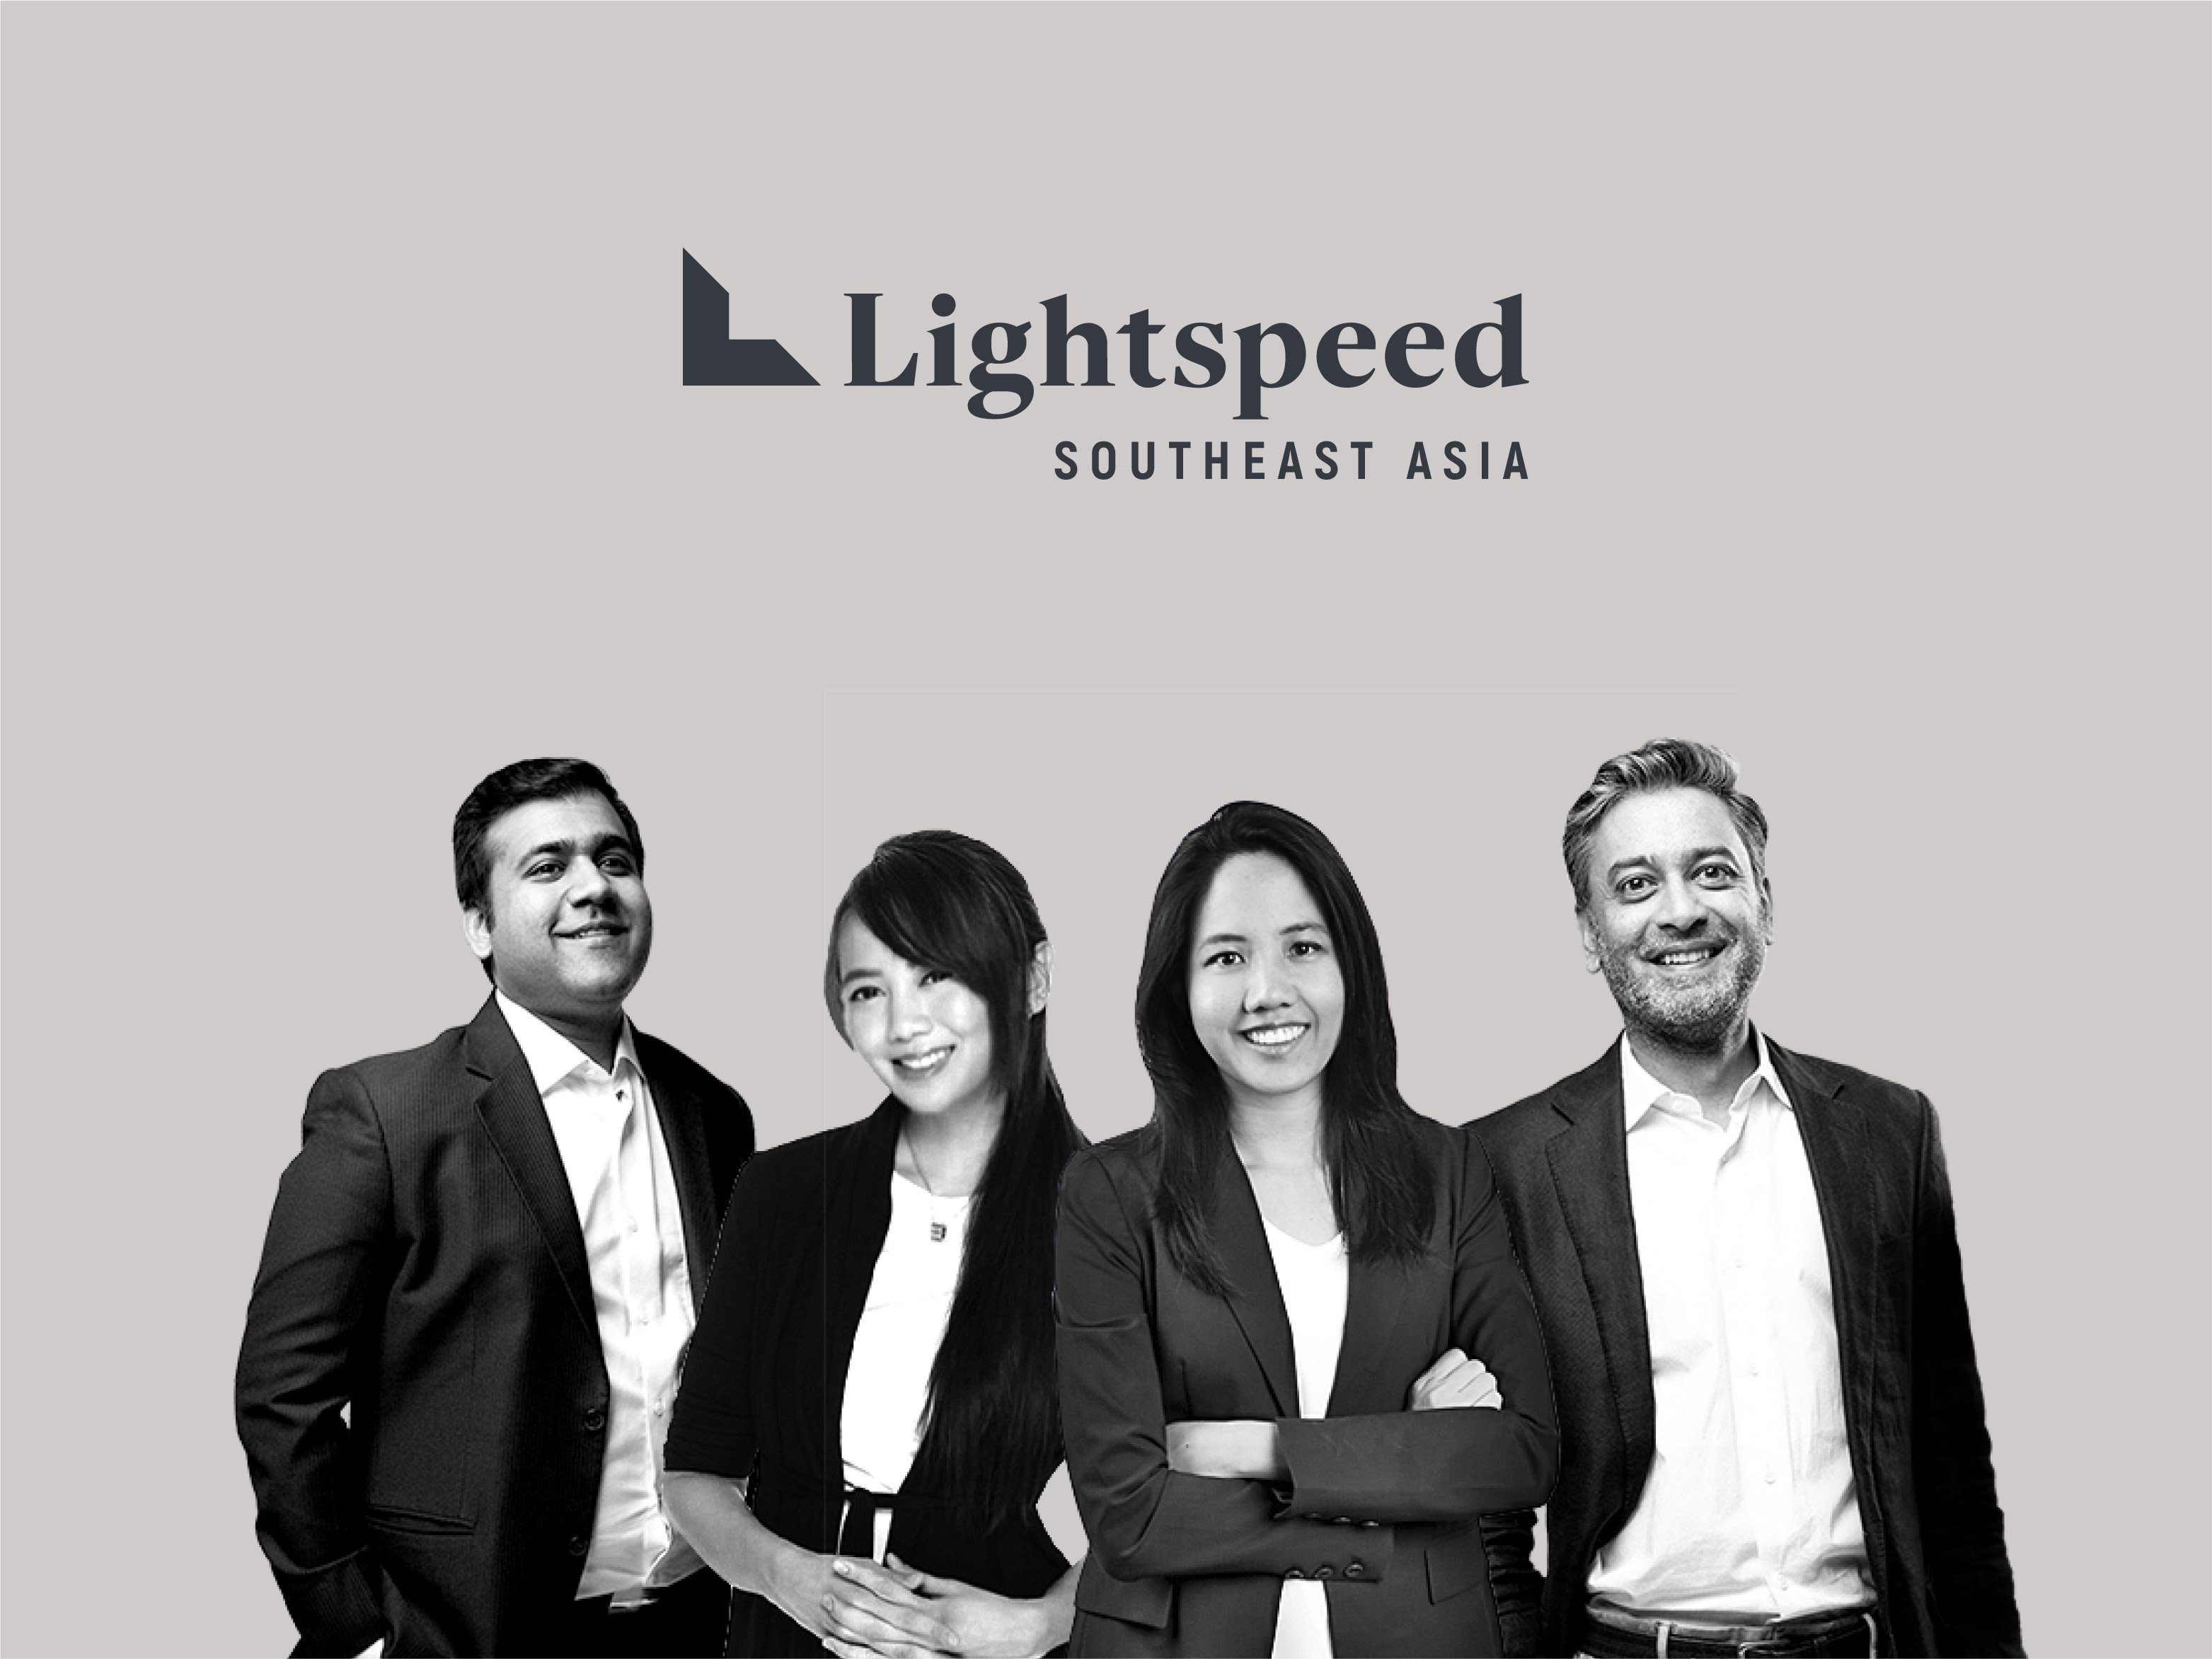 A group photo of Lightspeed Venture Capital's Southeast Asia team